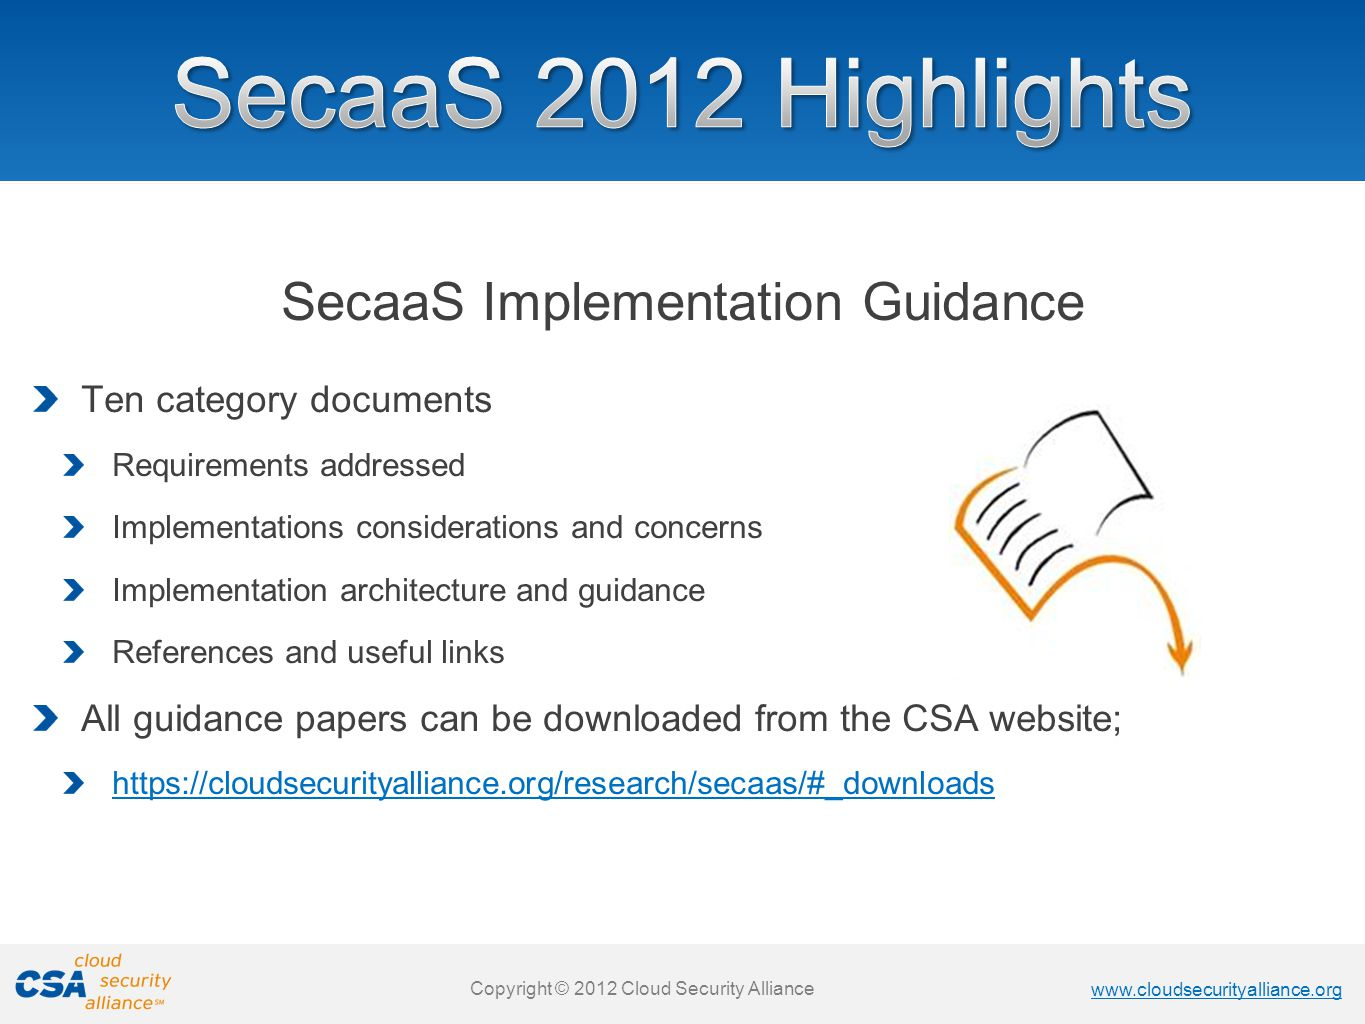 www.cloudsecurityalliance.org Copyright © 2013 Cloud Security Alliance www.cloudsecurityalliance.org Copyright © 2012 Cloud Security Alliance SecaaS Implementation Guidance Ten category documents Requirements addressed Implementations considerations and concerns Implementation architecture and guidance References and useful links All guidance papers can be downloaded from the CSA website; https://cloudsecurityalliance.org/research/secaas/#_downloads